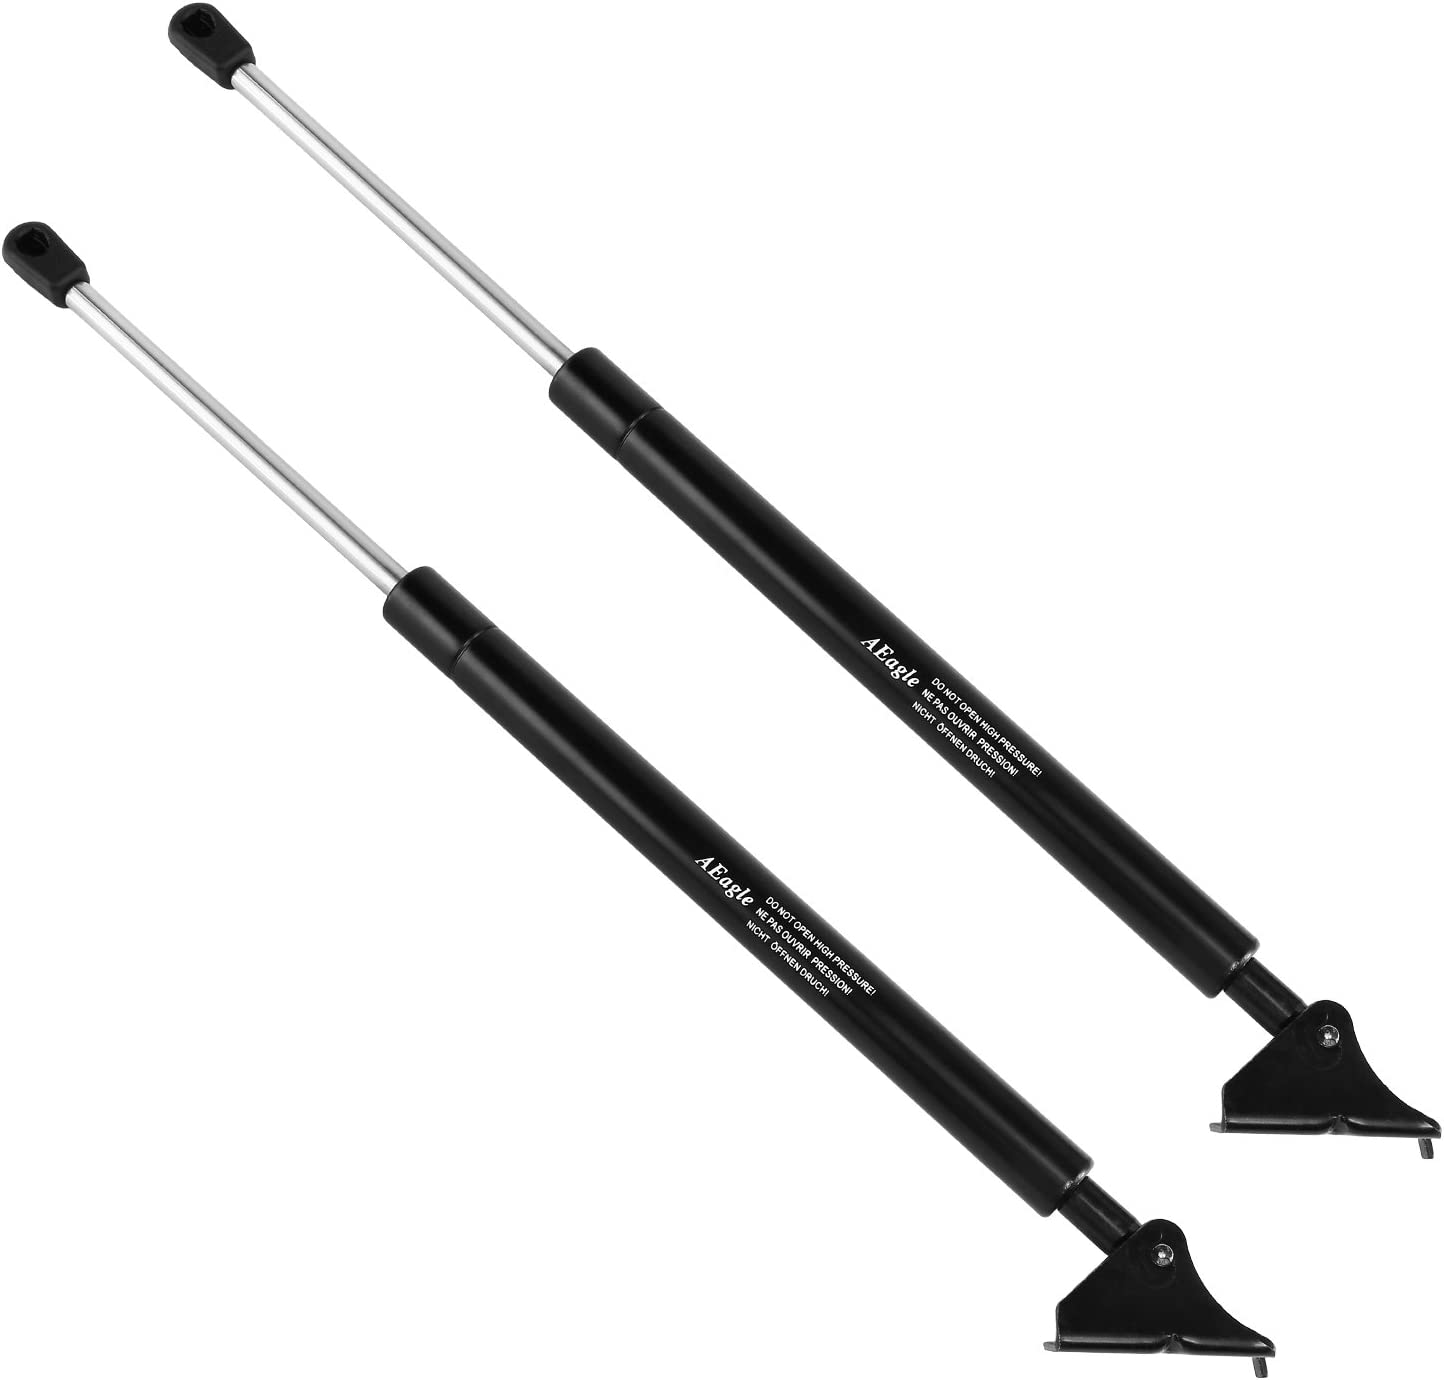 2pcs Rear Tailgate Lift Supports Shock Struts for 93-98 Jeep Grand Cherokee 4857